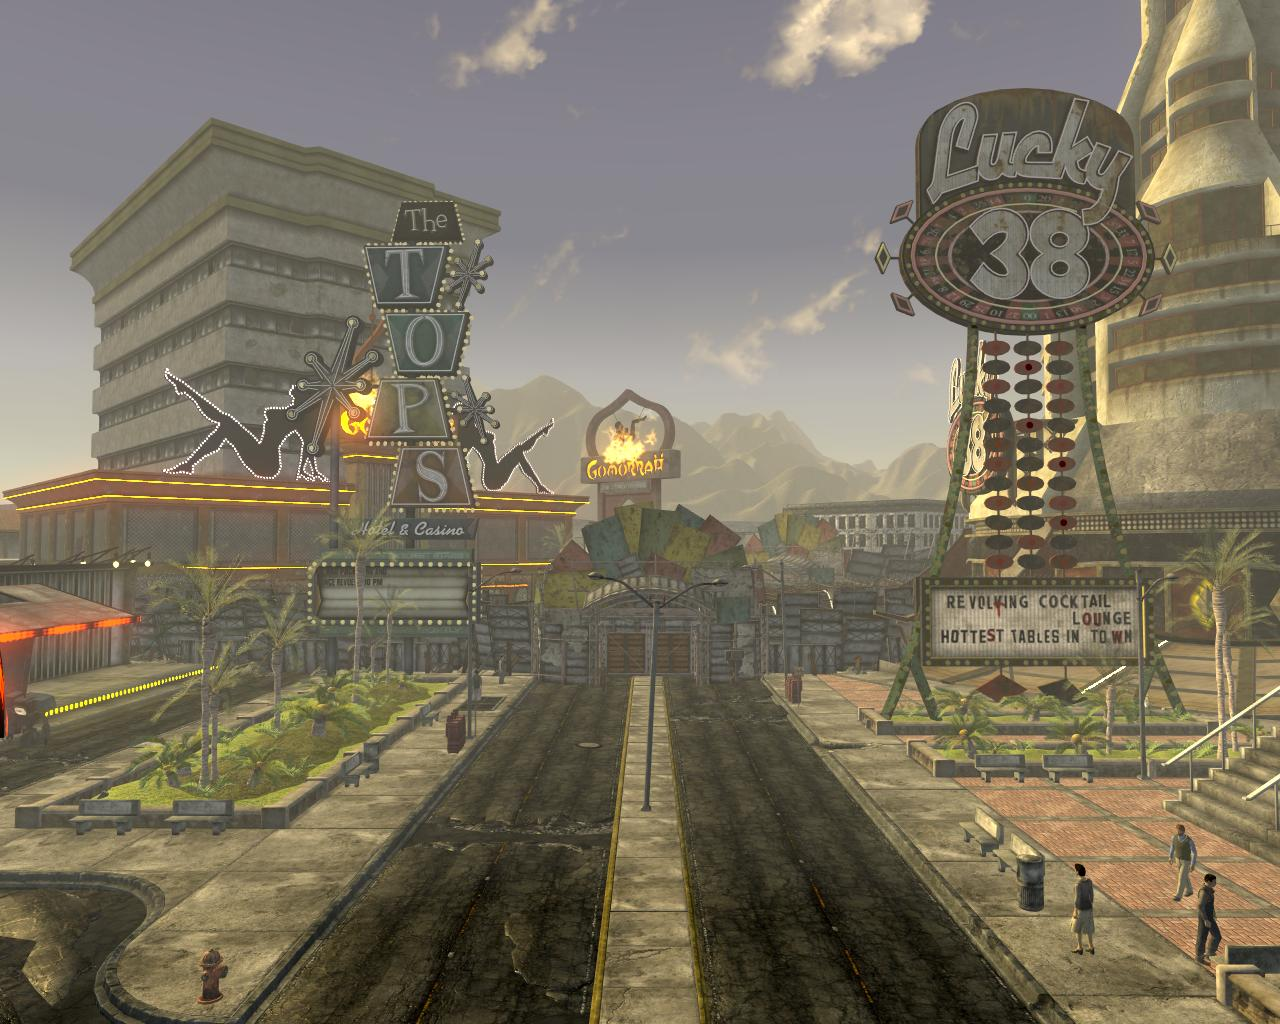 The New Vegas Strip